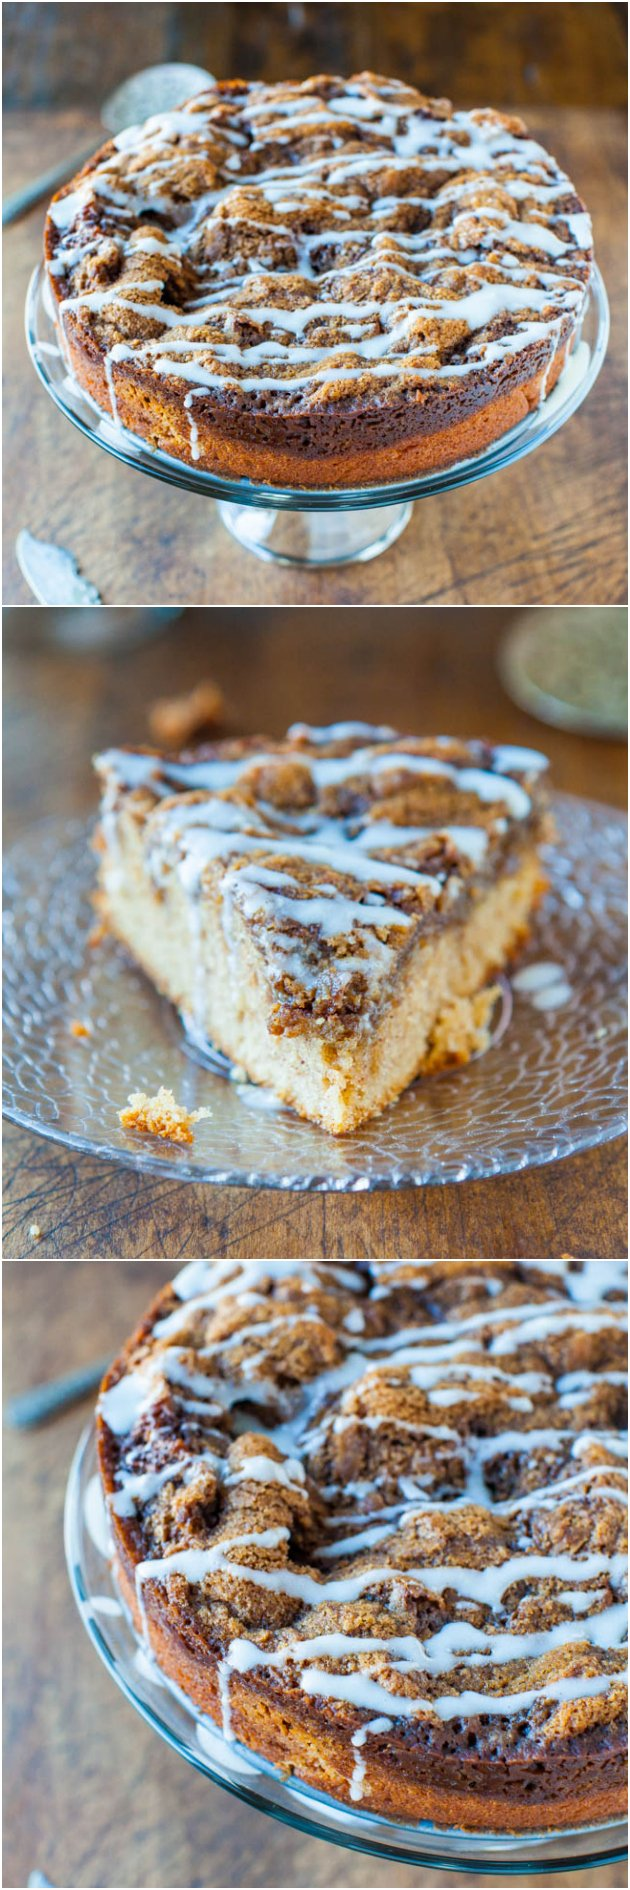 Cinnamon Roll Coffee Cake with Cream Cheese Glaze - The great taste of cinnamon